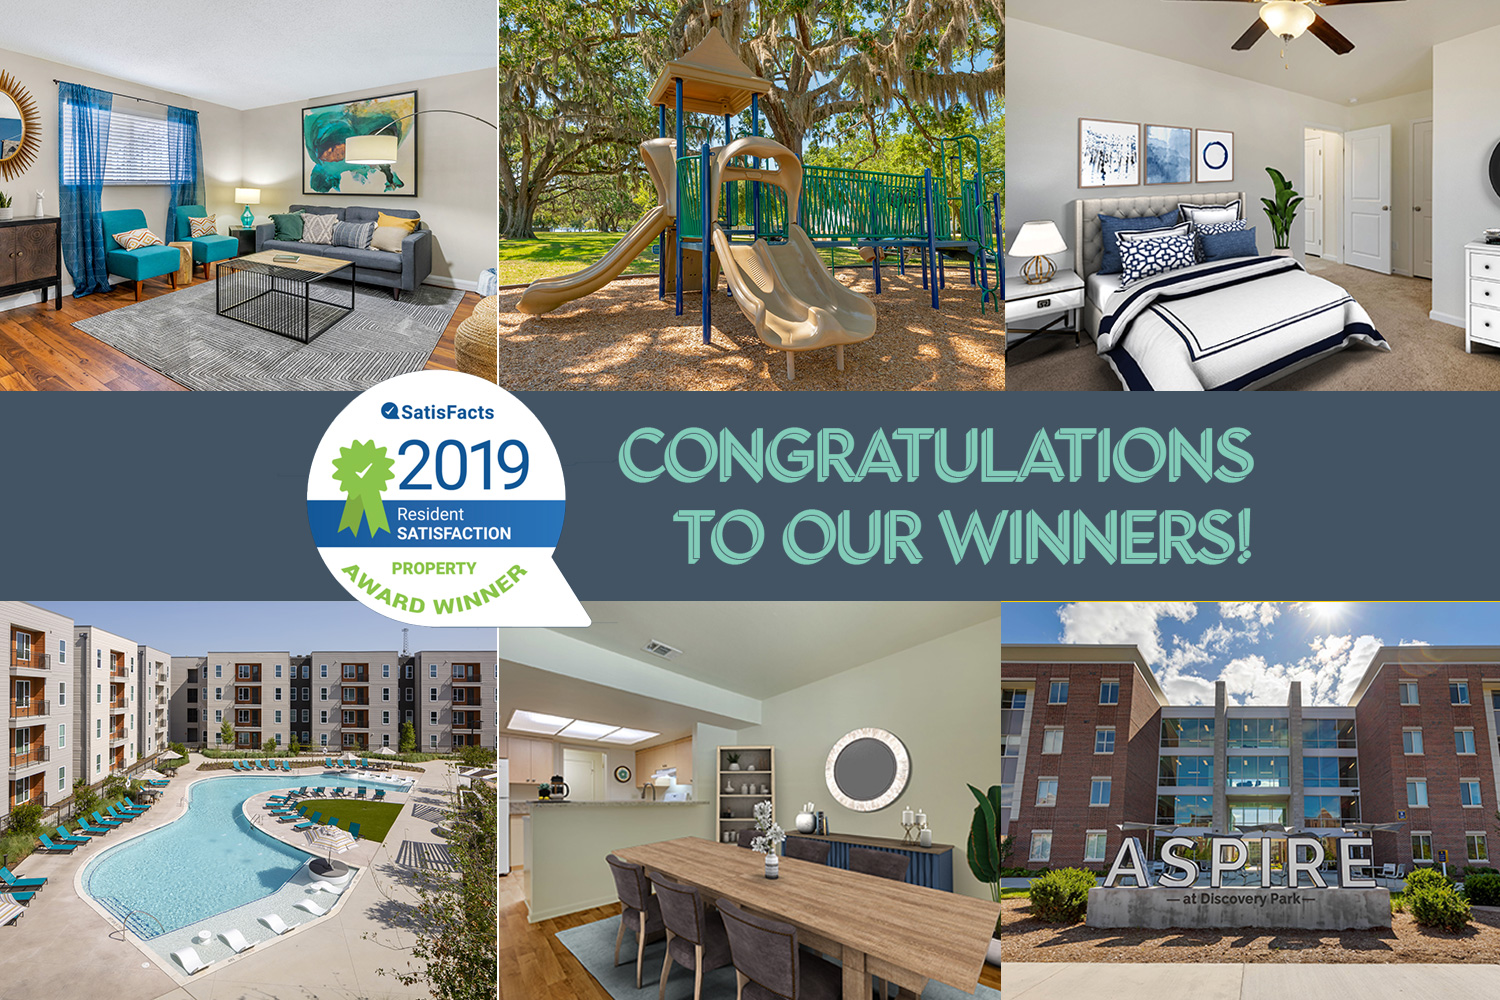 Balfour Beatty Communities military, multifamily and student properties recognized for resident satisfaction in 2019